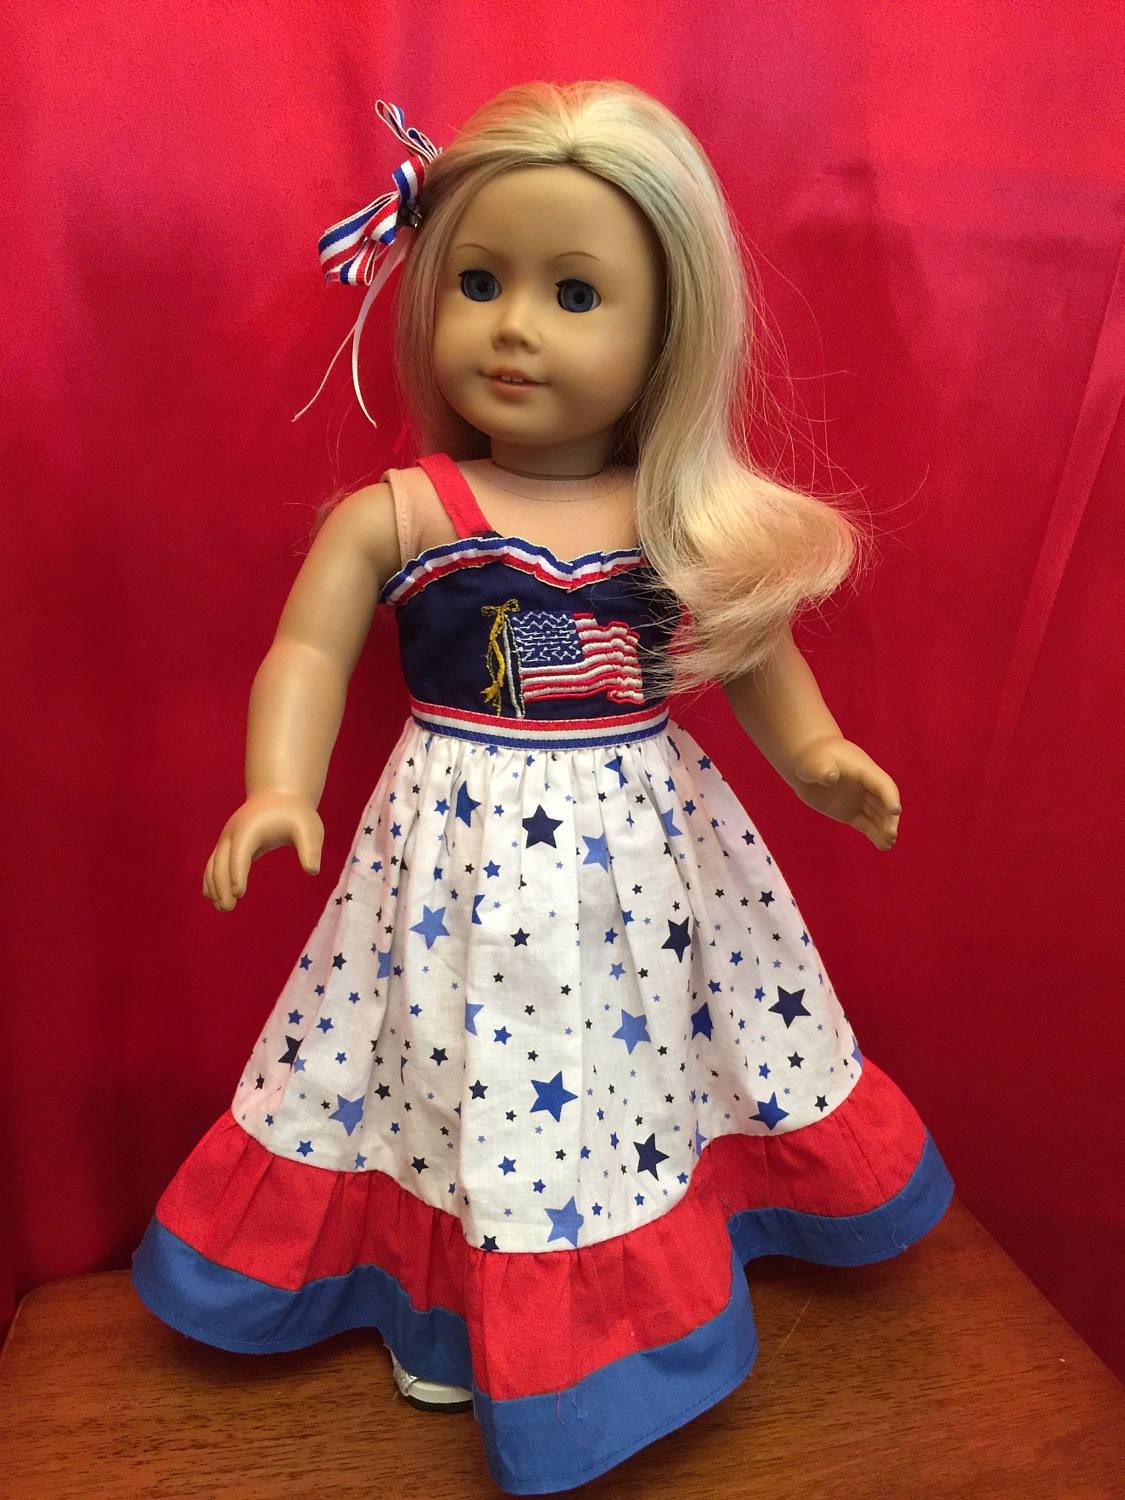 Homemade Doll Clothes For 18 Inch Dolls Like American Girl And ...